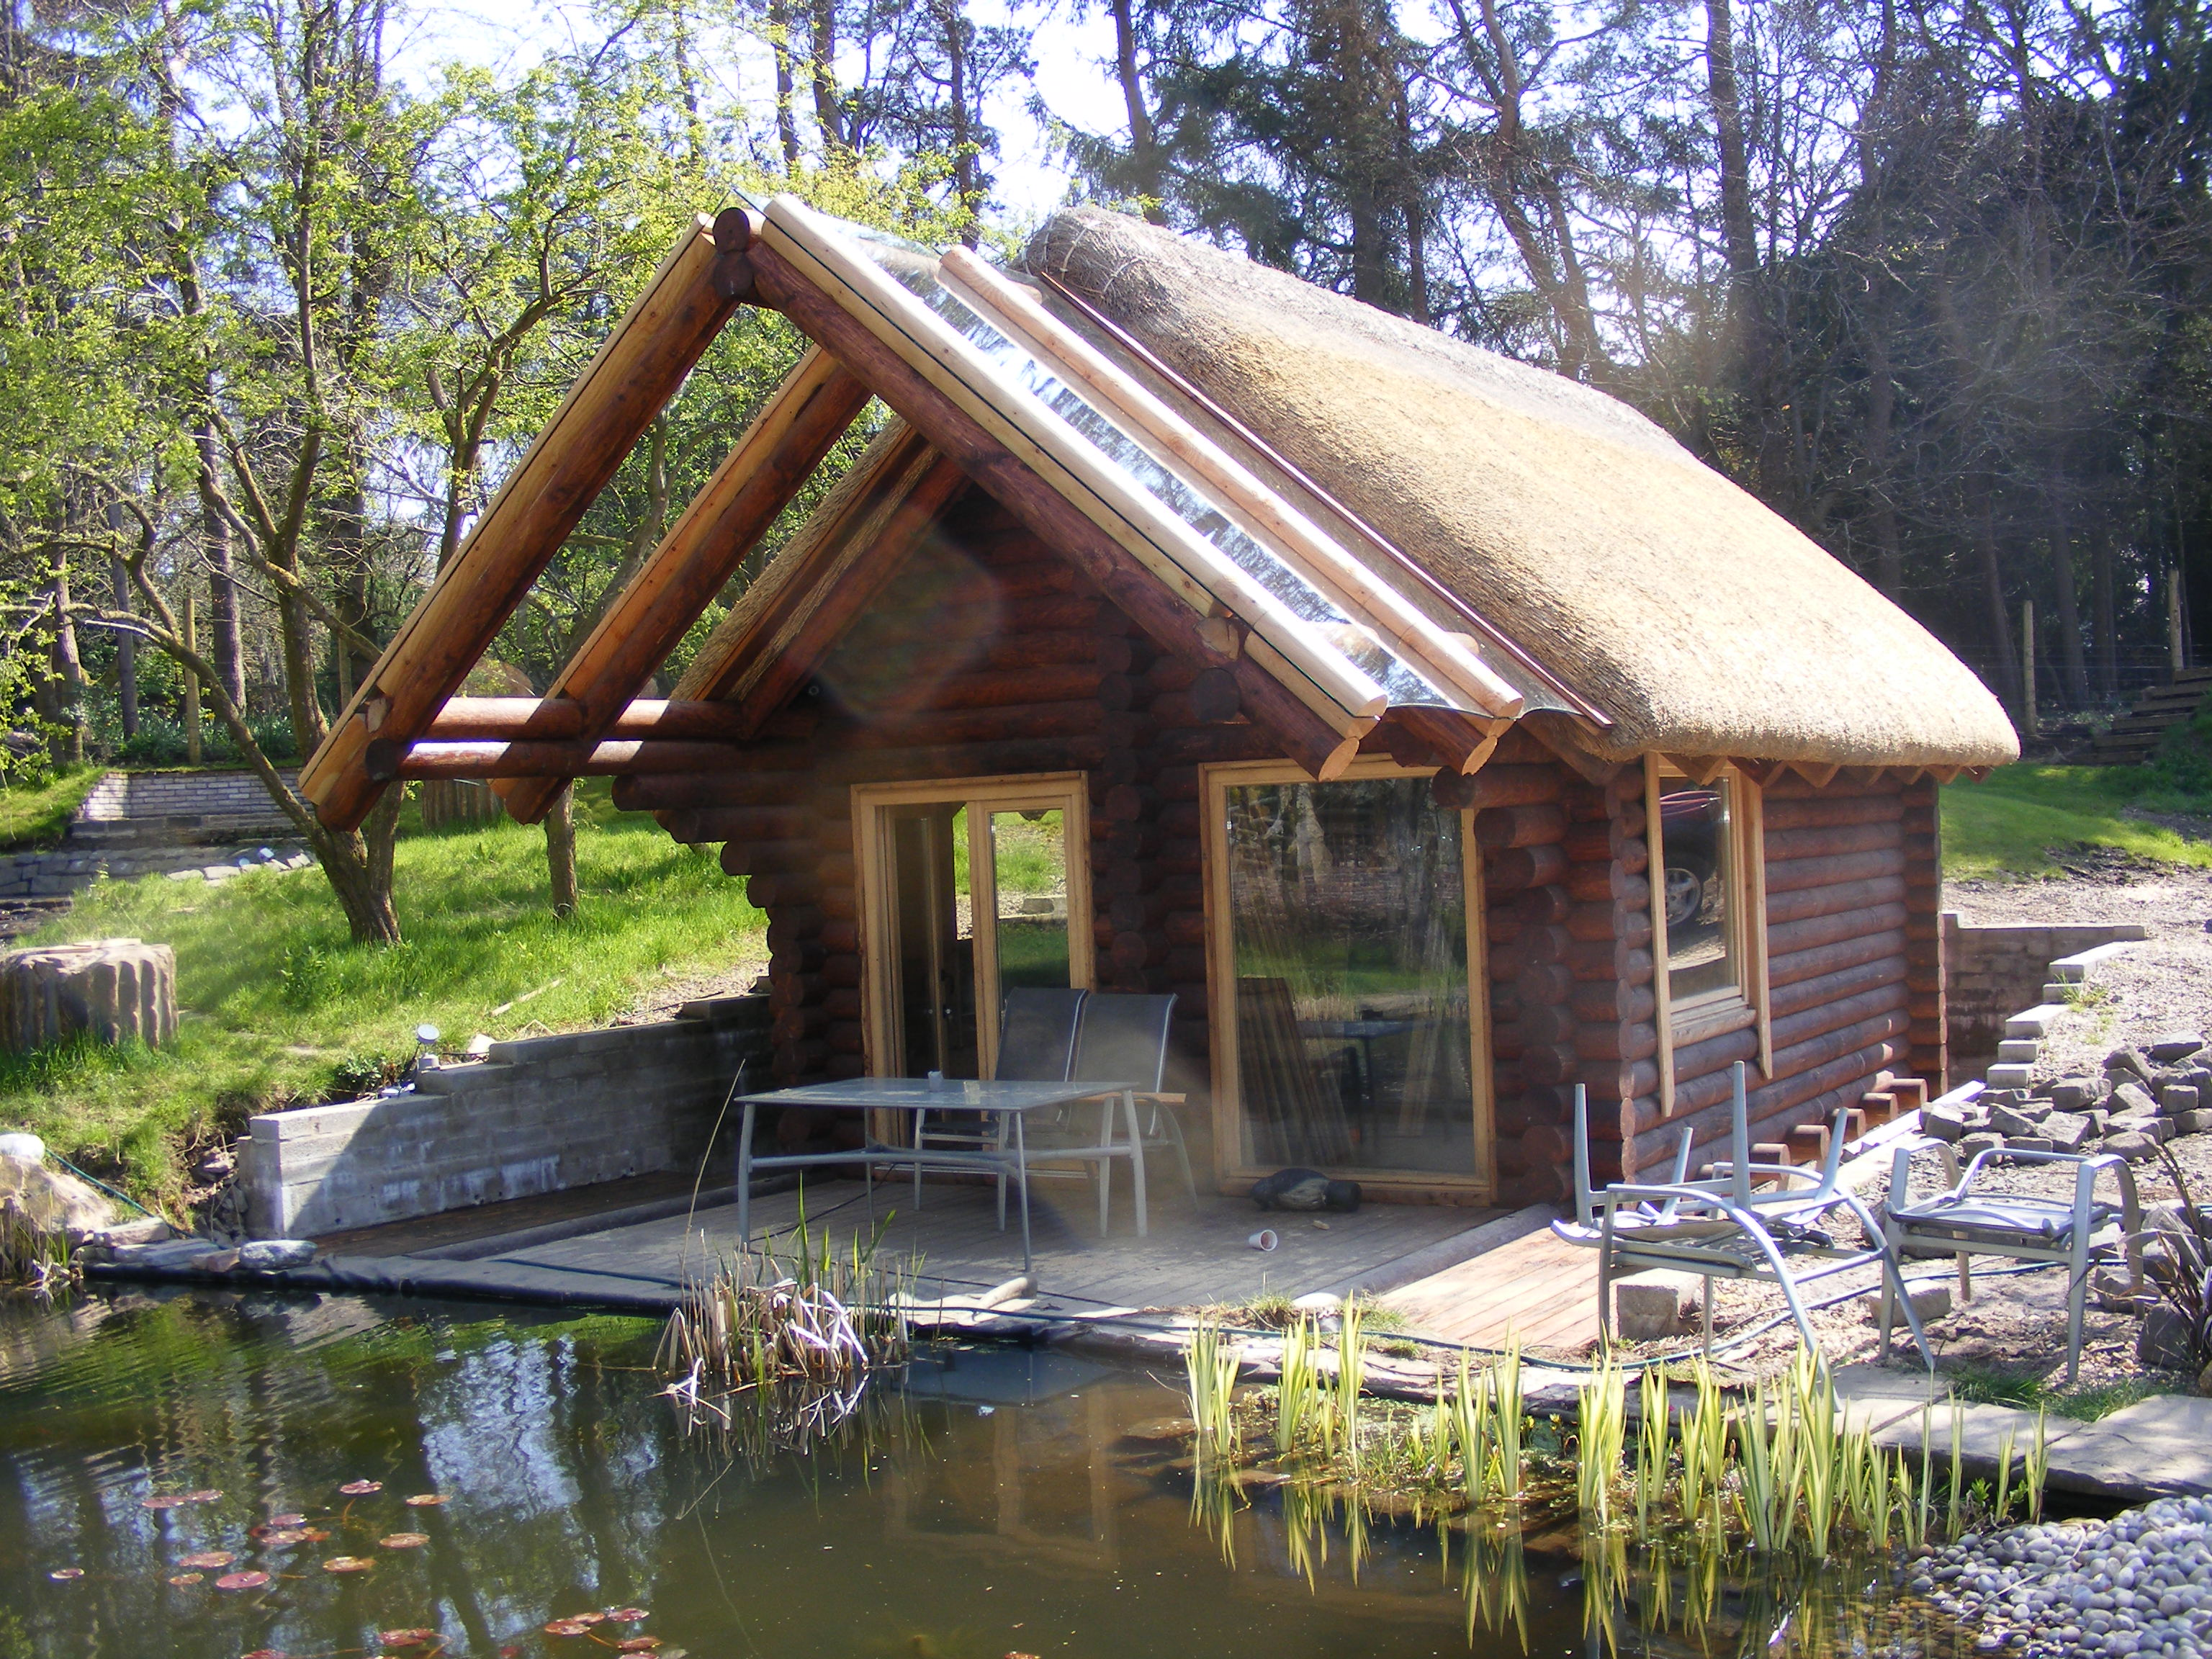 range homes sale bespoke cabins ireland gold for manufacturers cabin log robin beaver